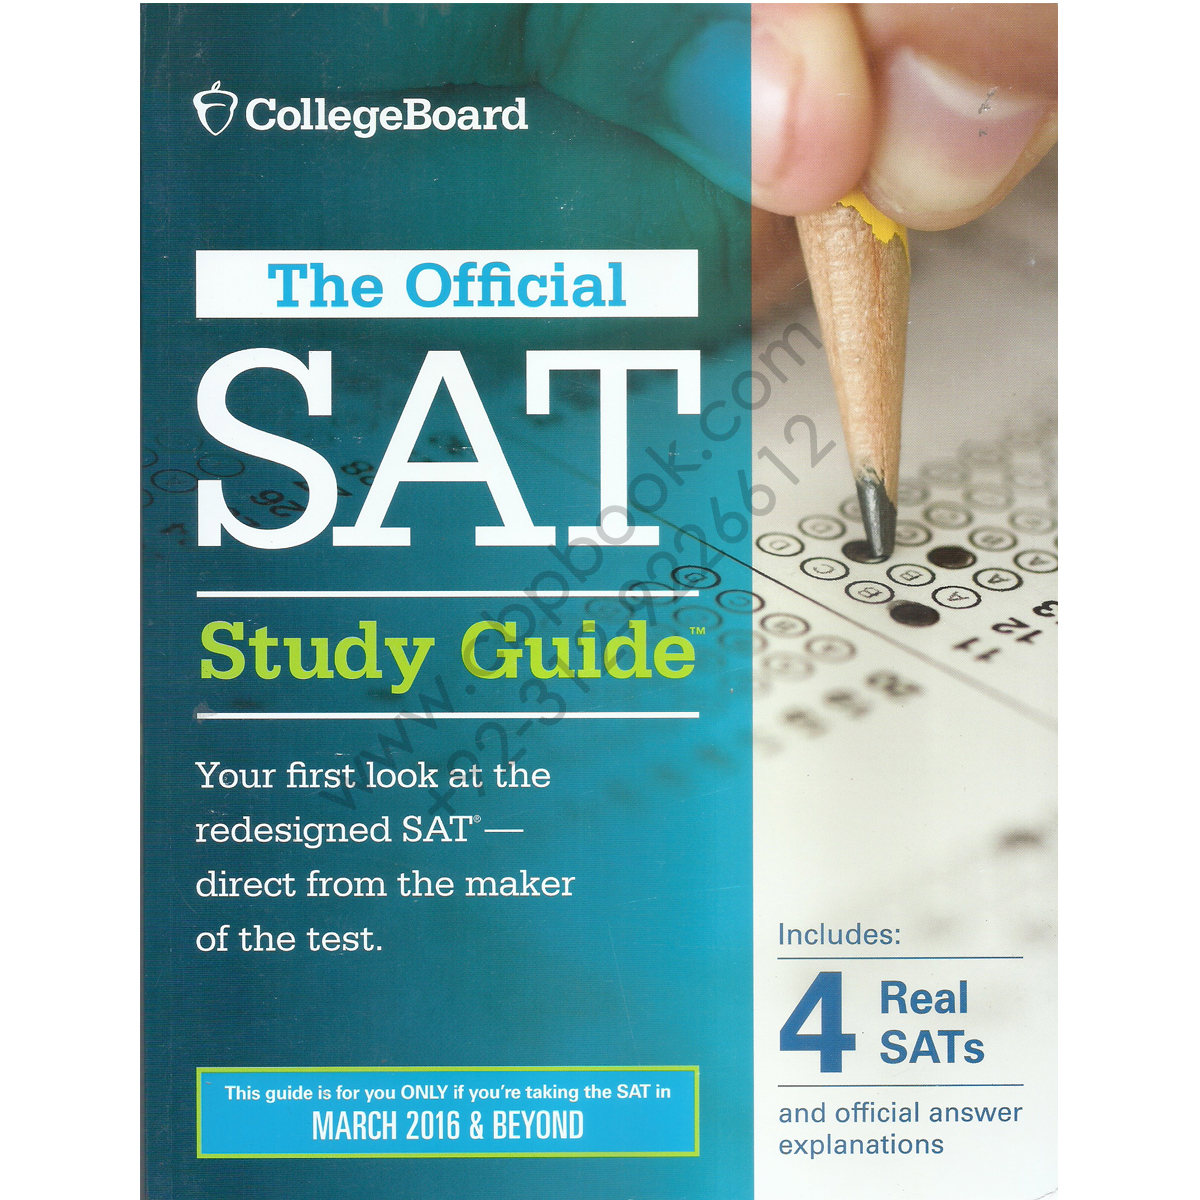 SAT Prep: Practice & Study Guide Course - Online Video ...